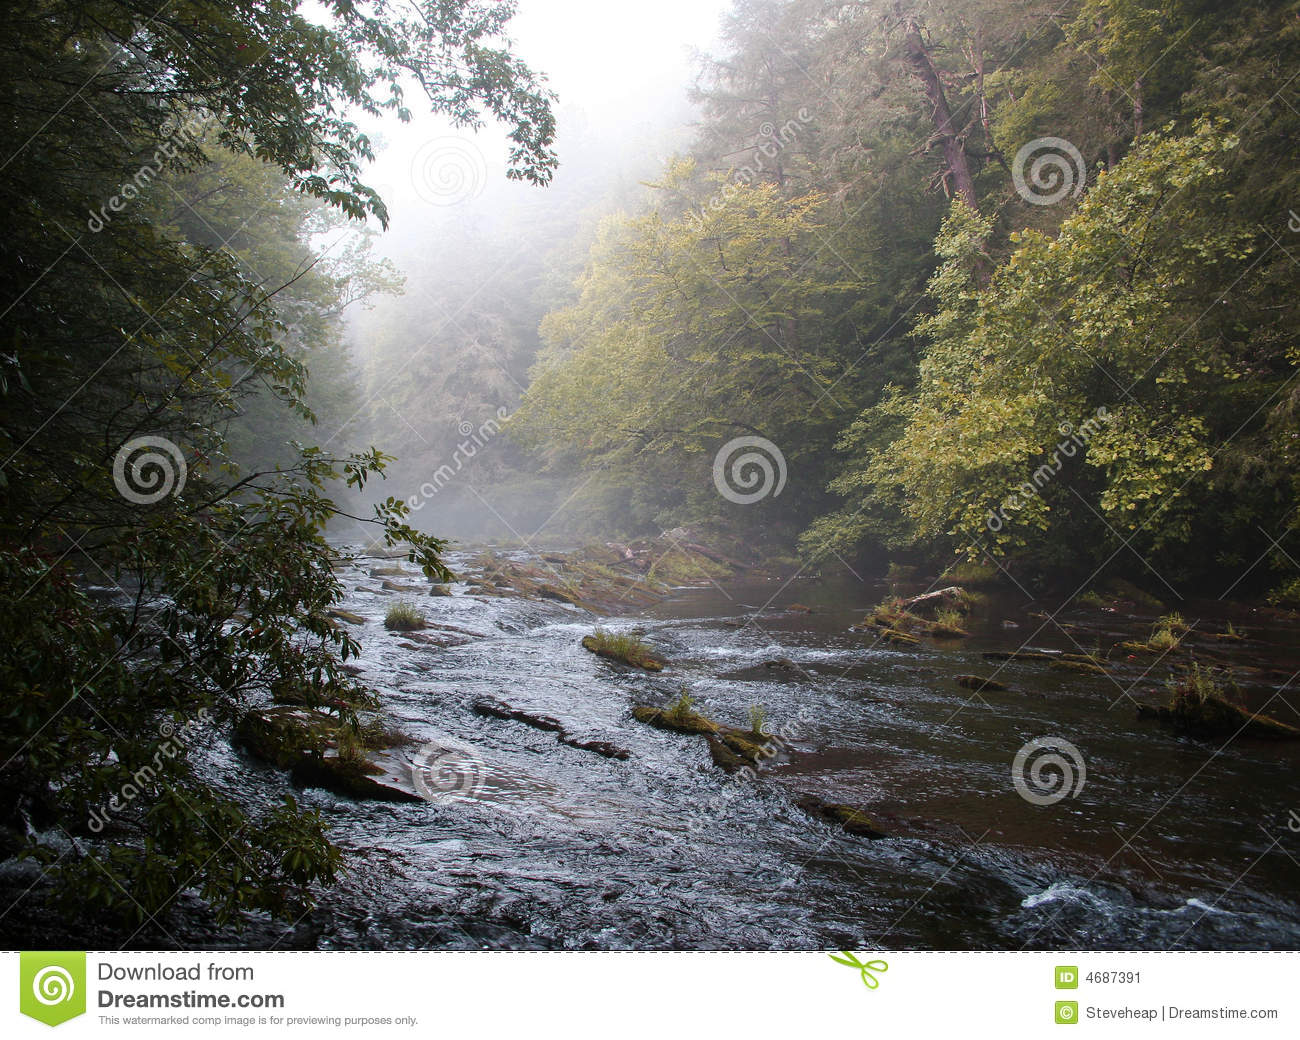 Rural River in early fall